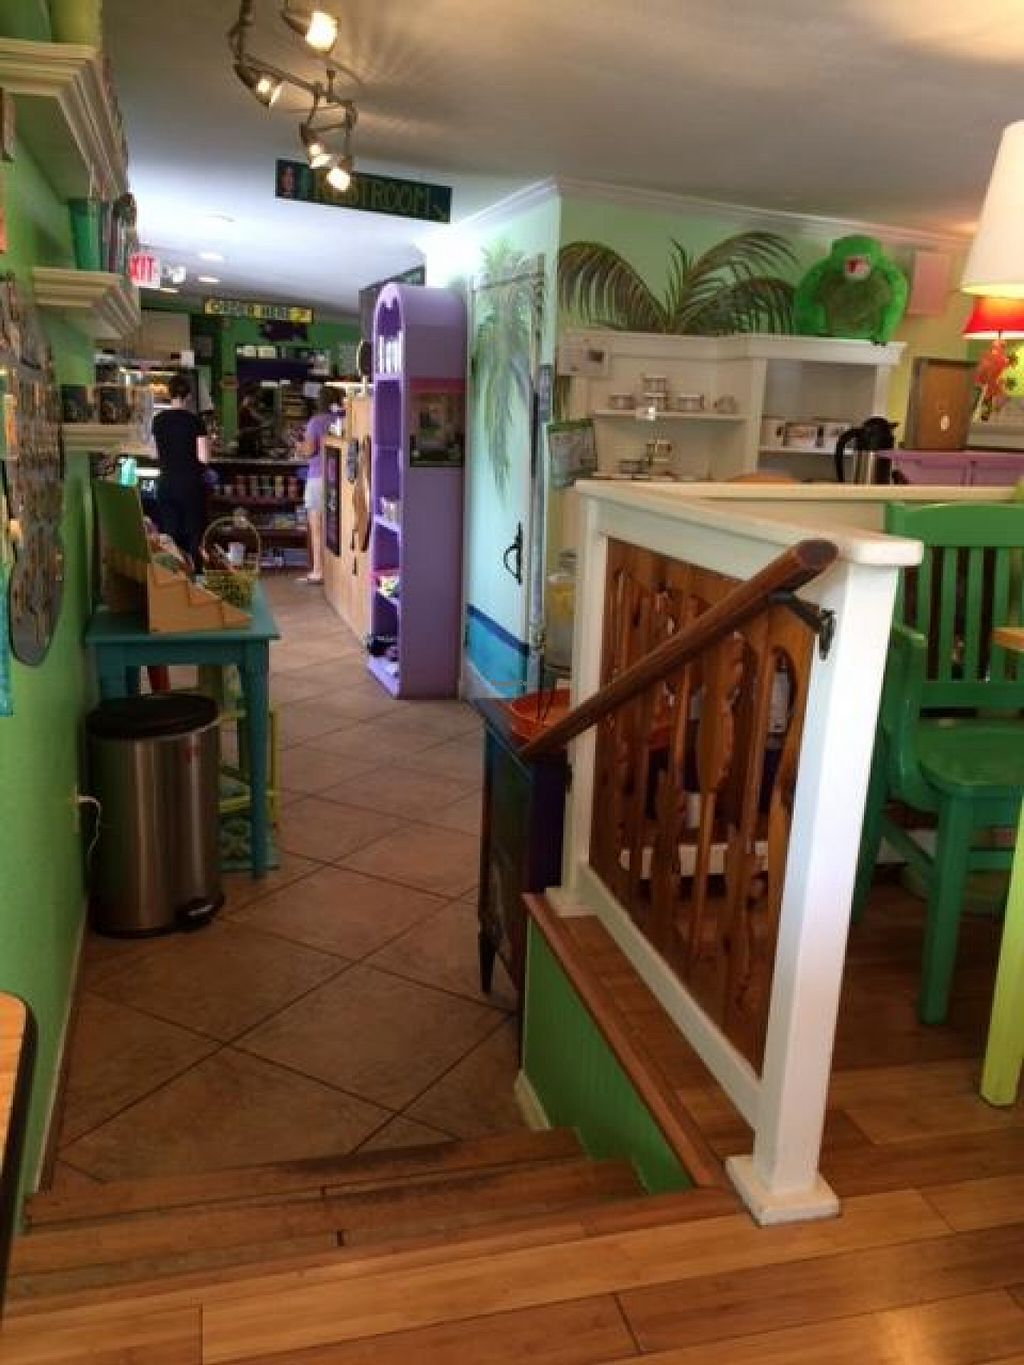 """Photo of Midway Cafe and Coffee Bar  by <a href=""""/members/profile/veggylvr"""">veggylvr</a> <br/>Interior <br/> November 2, 2015  - <a href='/contact/abuse/image/20233/123574'>Report</a>"""